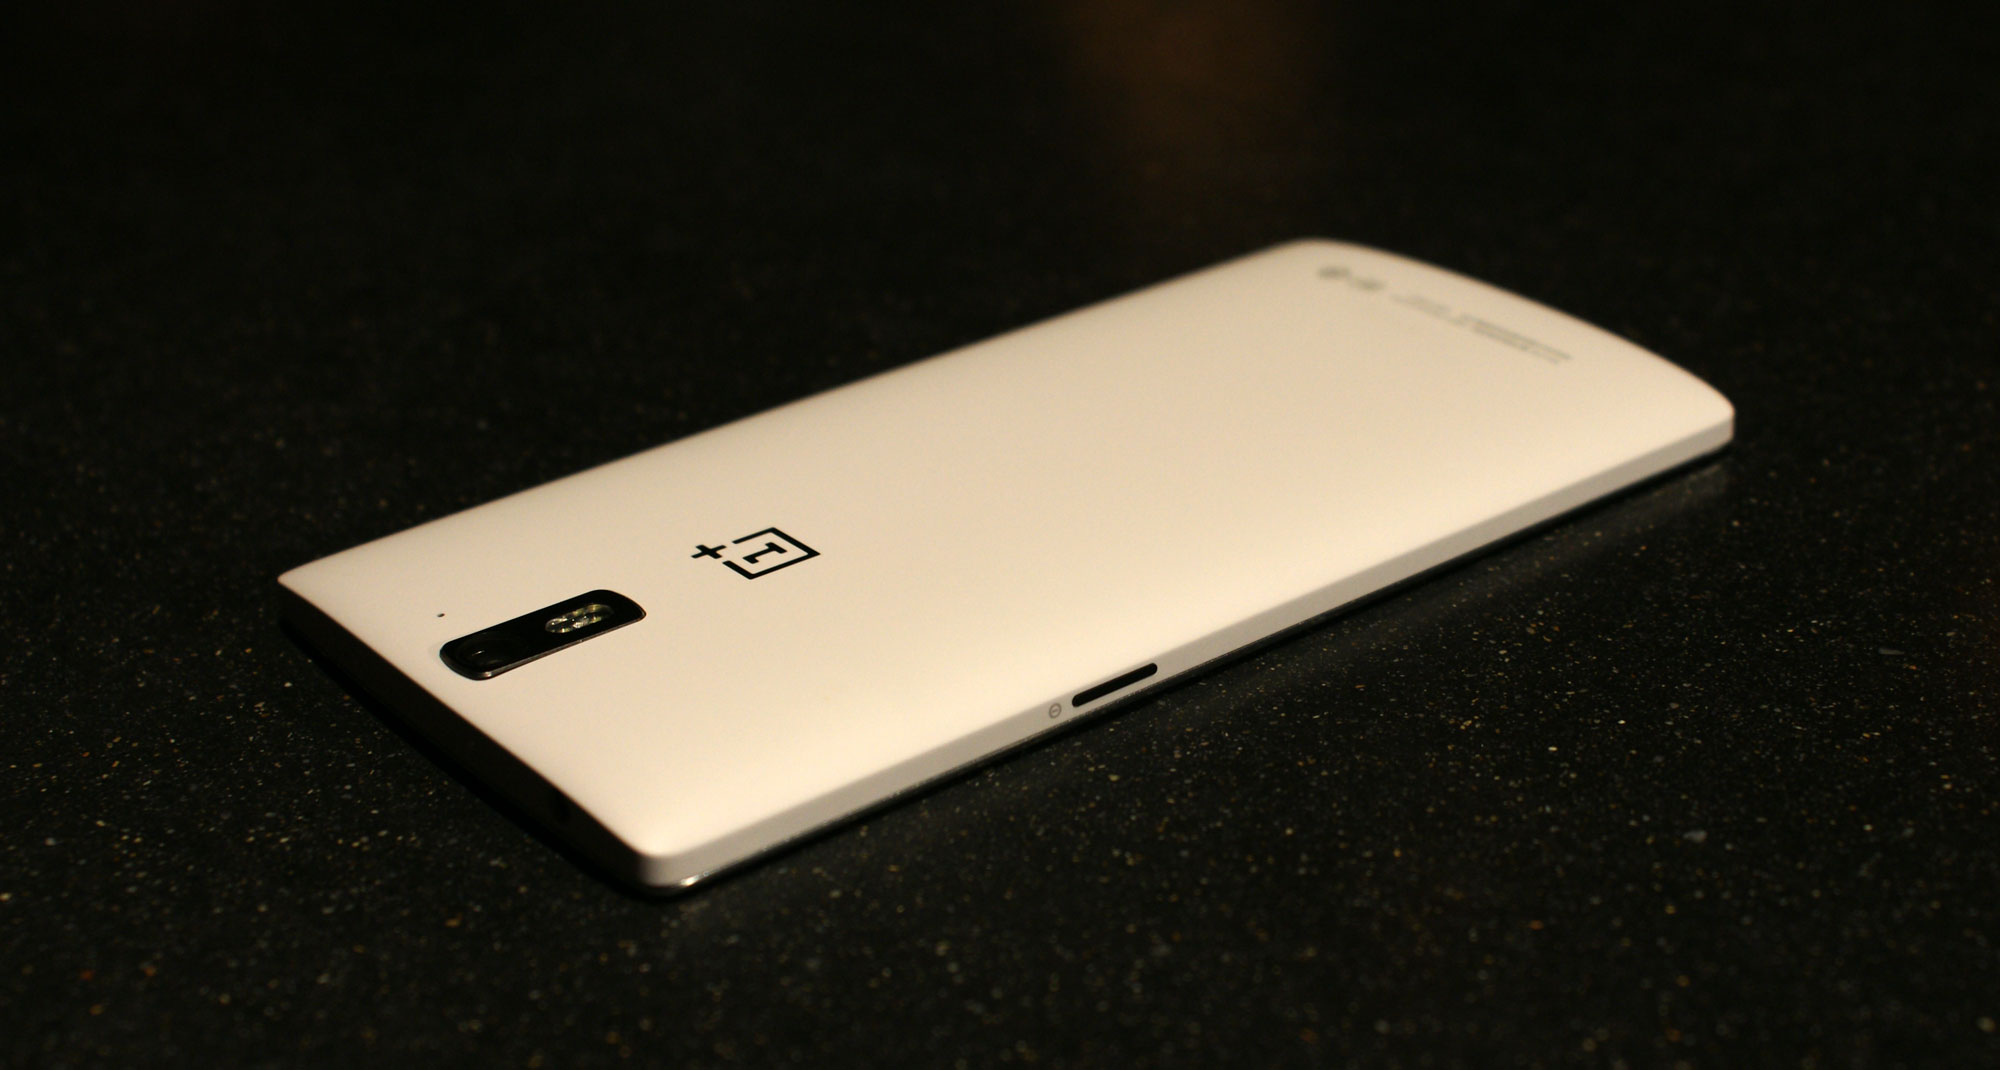 Cyanogen Powered One Plus Is A Customizers Dream Phone The First Circuit Has Cell An Ammeter Reading 05a And Lamp Case Whole Thing Wrapped In